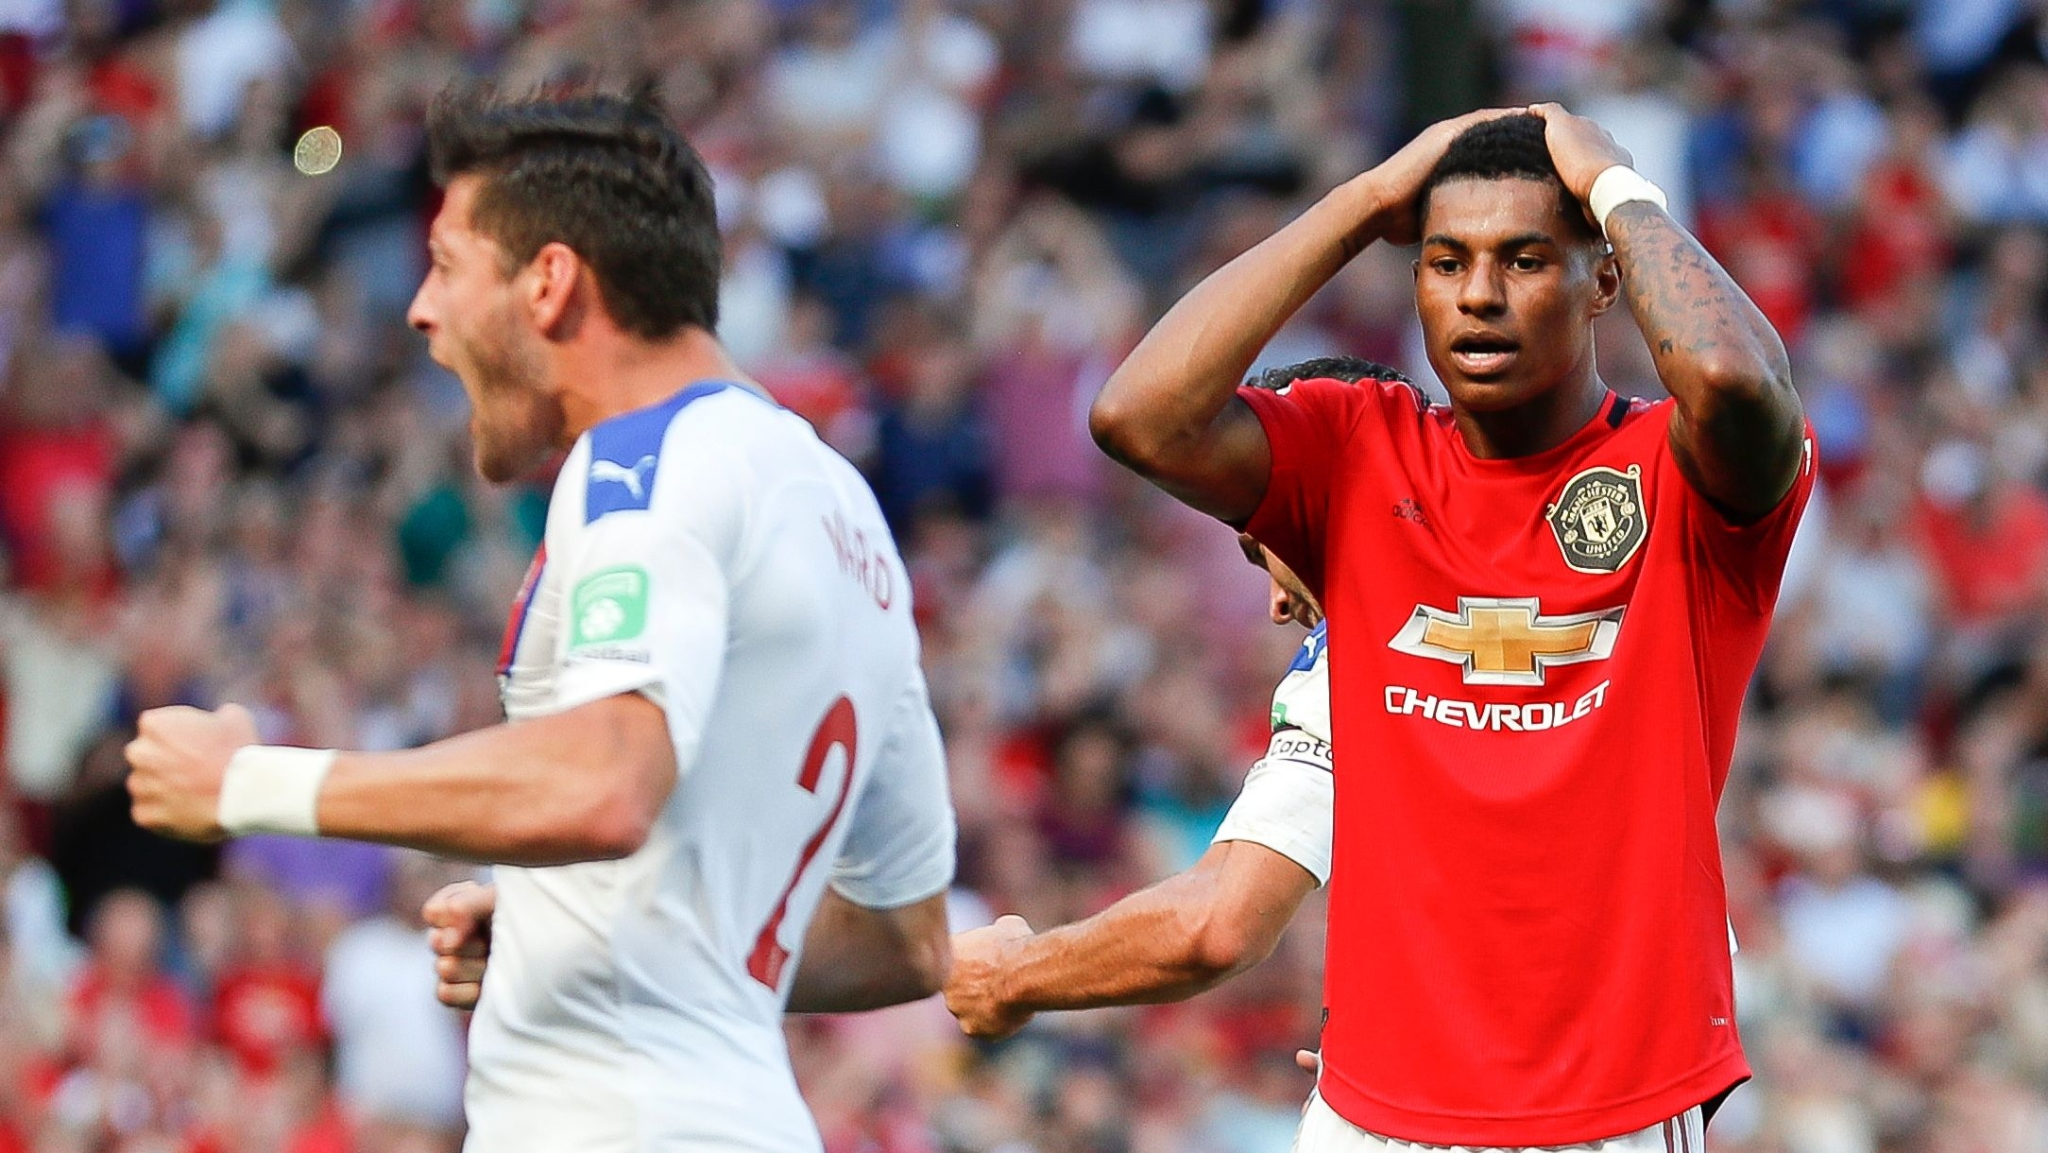 Manchester United Miss Another Penalty, Lose 1-2 to Crystal Palace